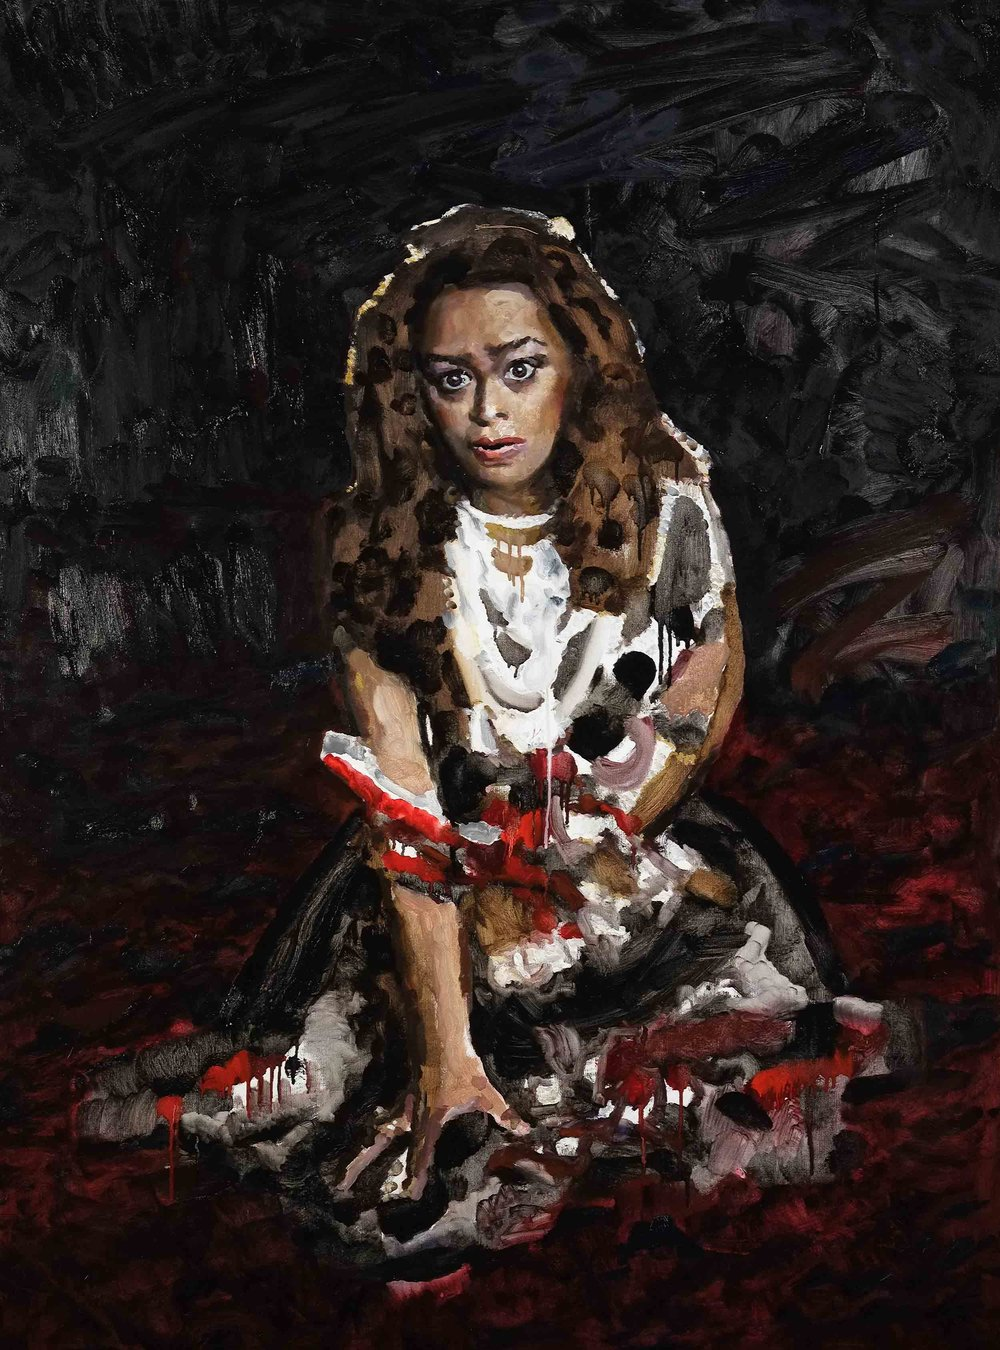 Unmannerly breech'd with gore (Lady Macbeth) 2015